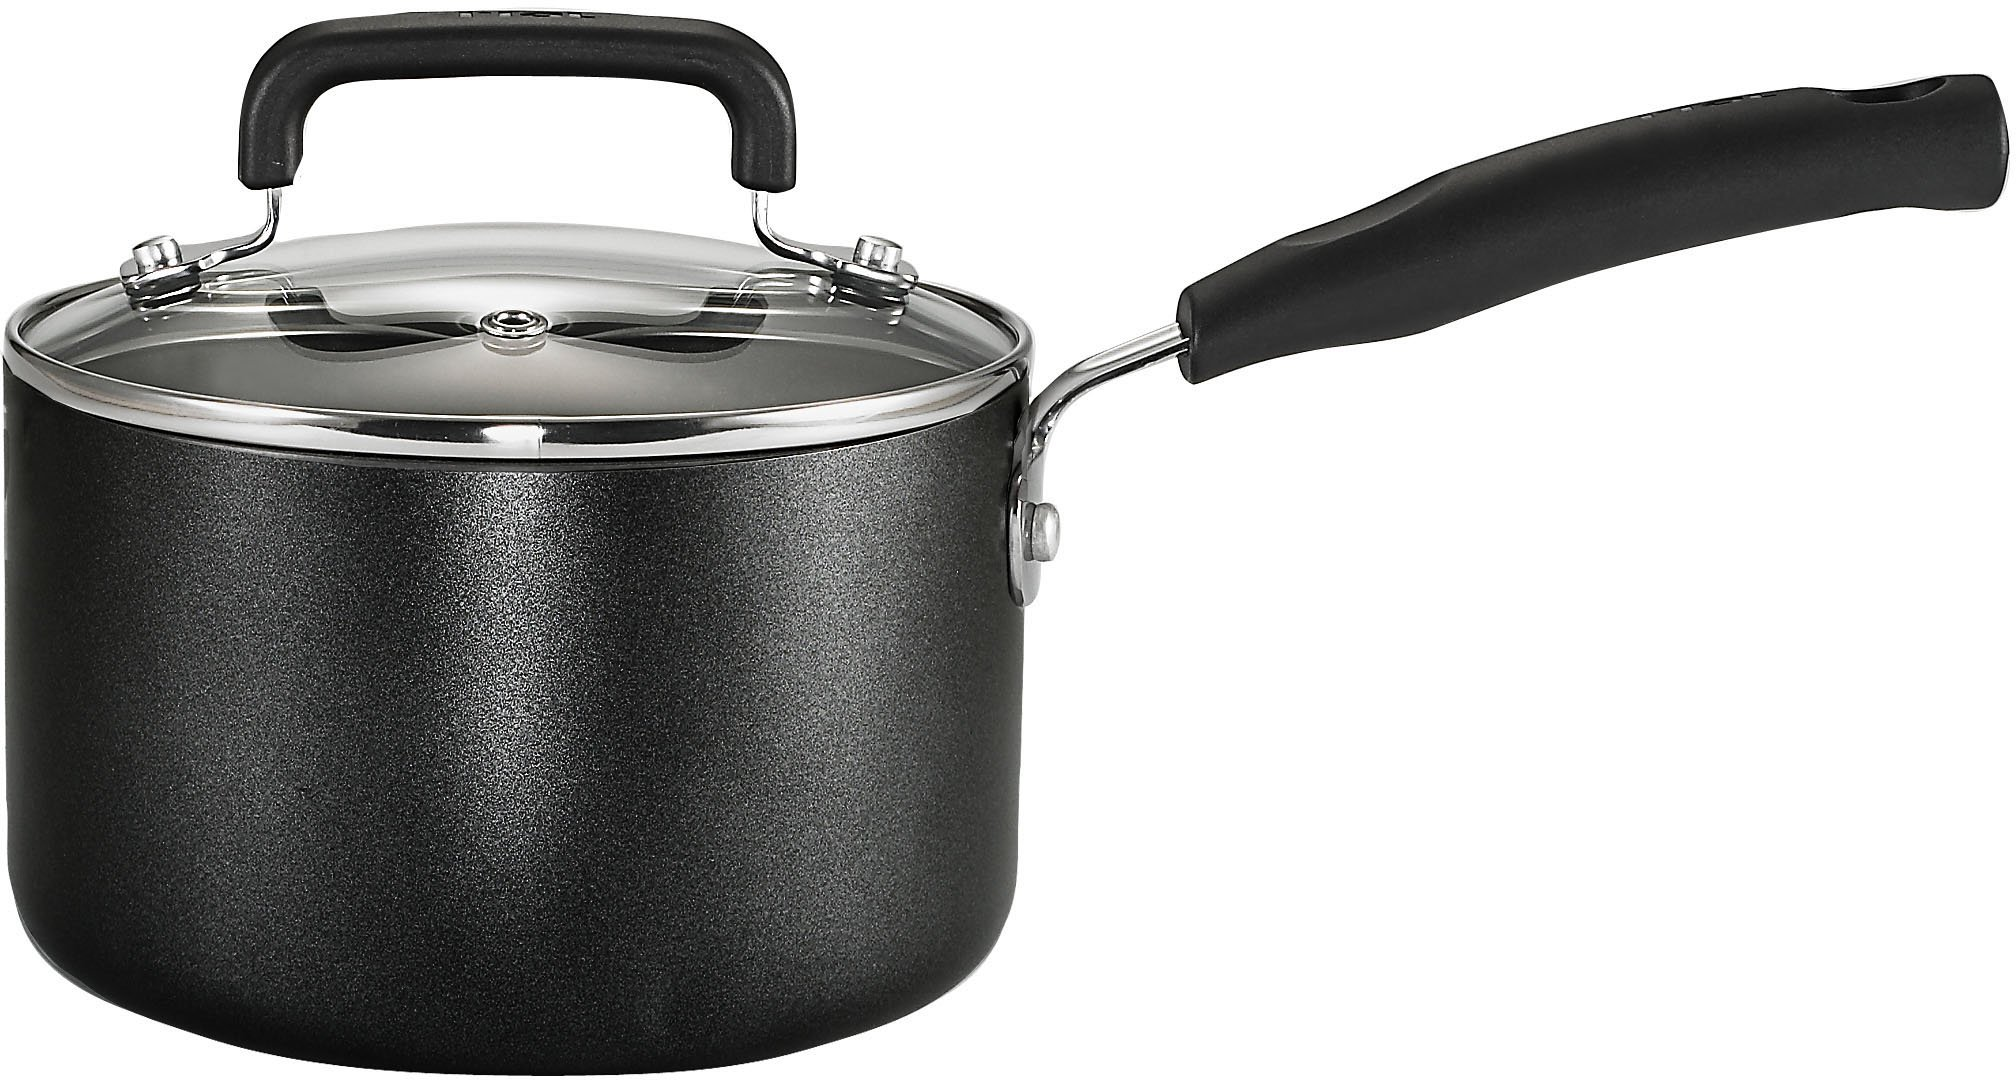 T-fal C11924 Signature Nonstick Expert Easy Clean Interior Dishwasher Safe PFOA Free Oven Safe 3-Quart Sauce Pan with Glass Lid Cookware, Black